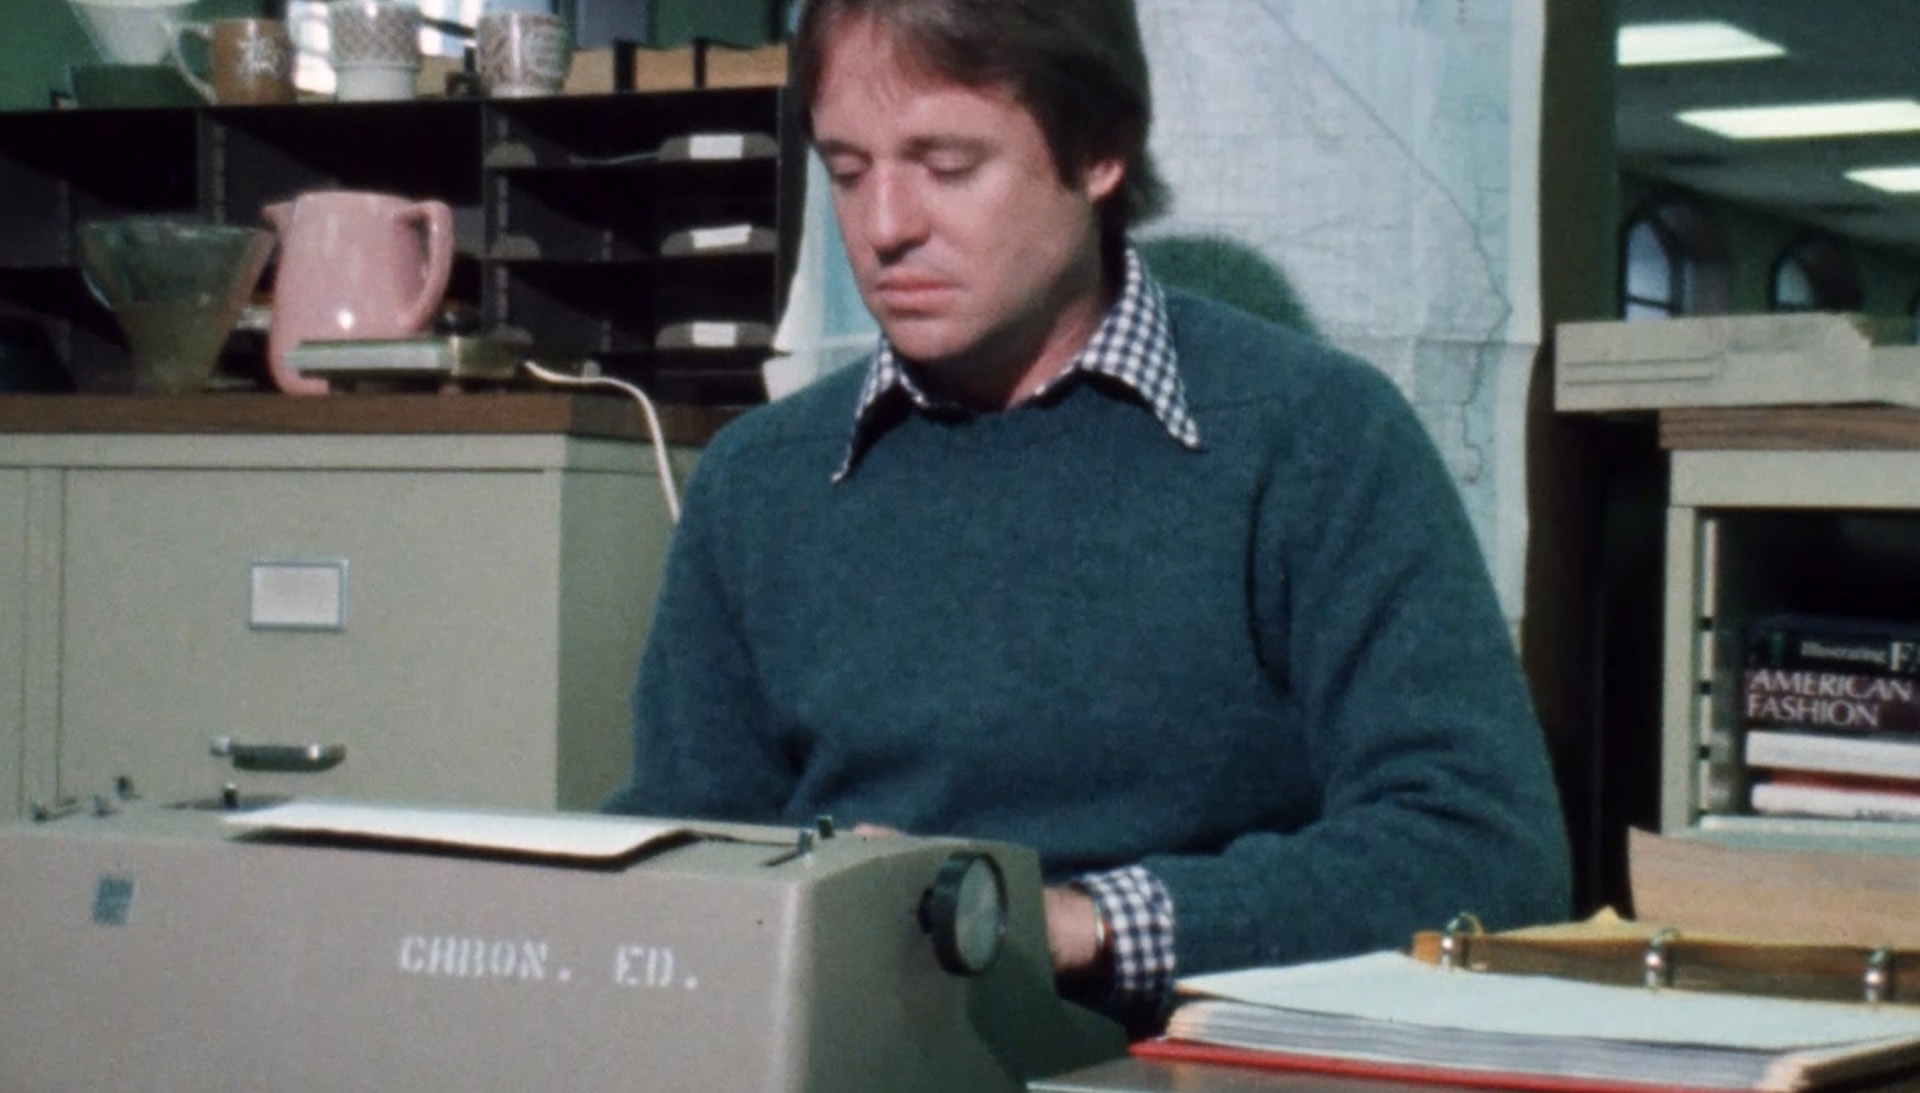 Armistead Maupin at typewriter in the 1970s, from Untold Tales